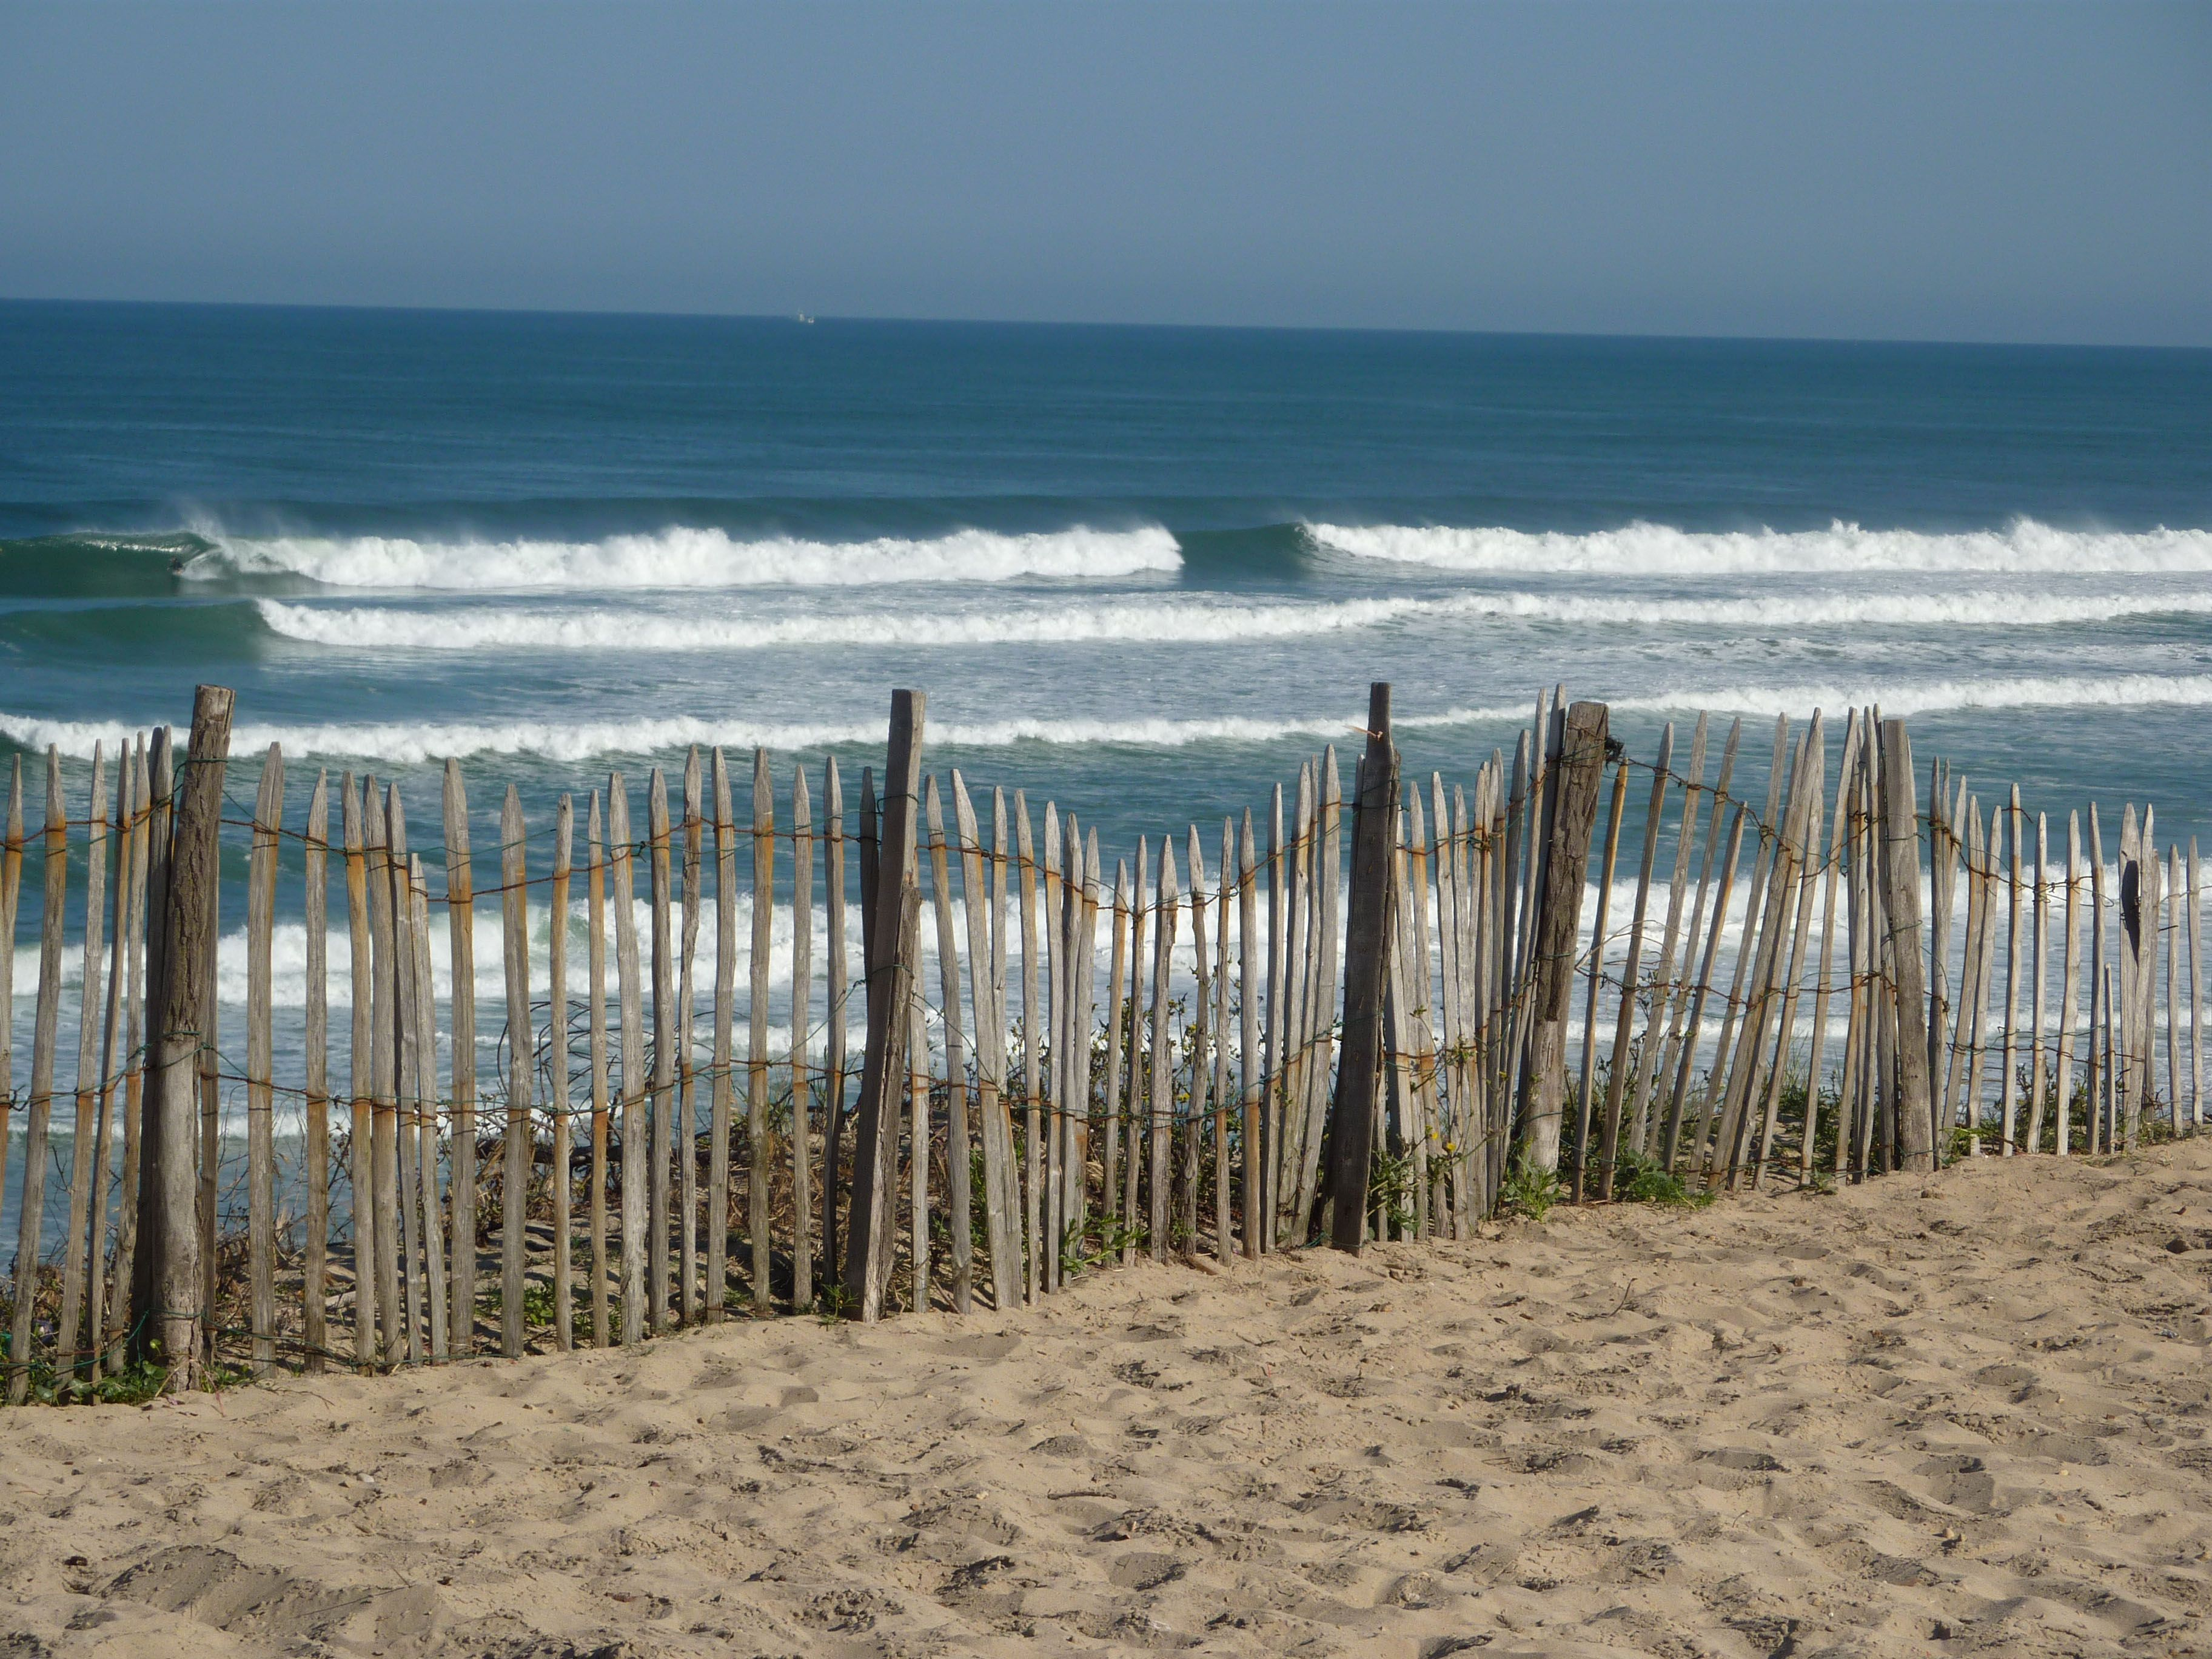 Entrance to the beach at Graviere Hossegor photo